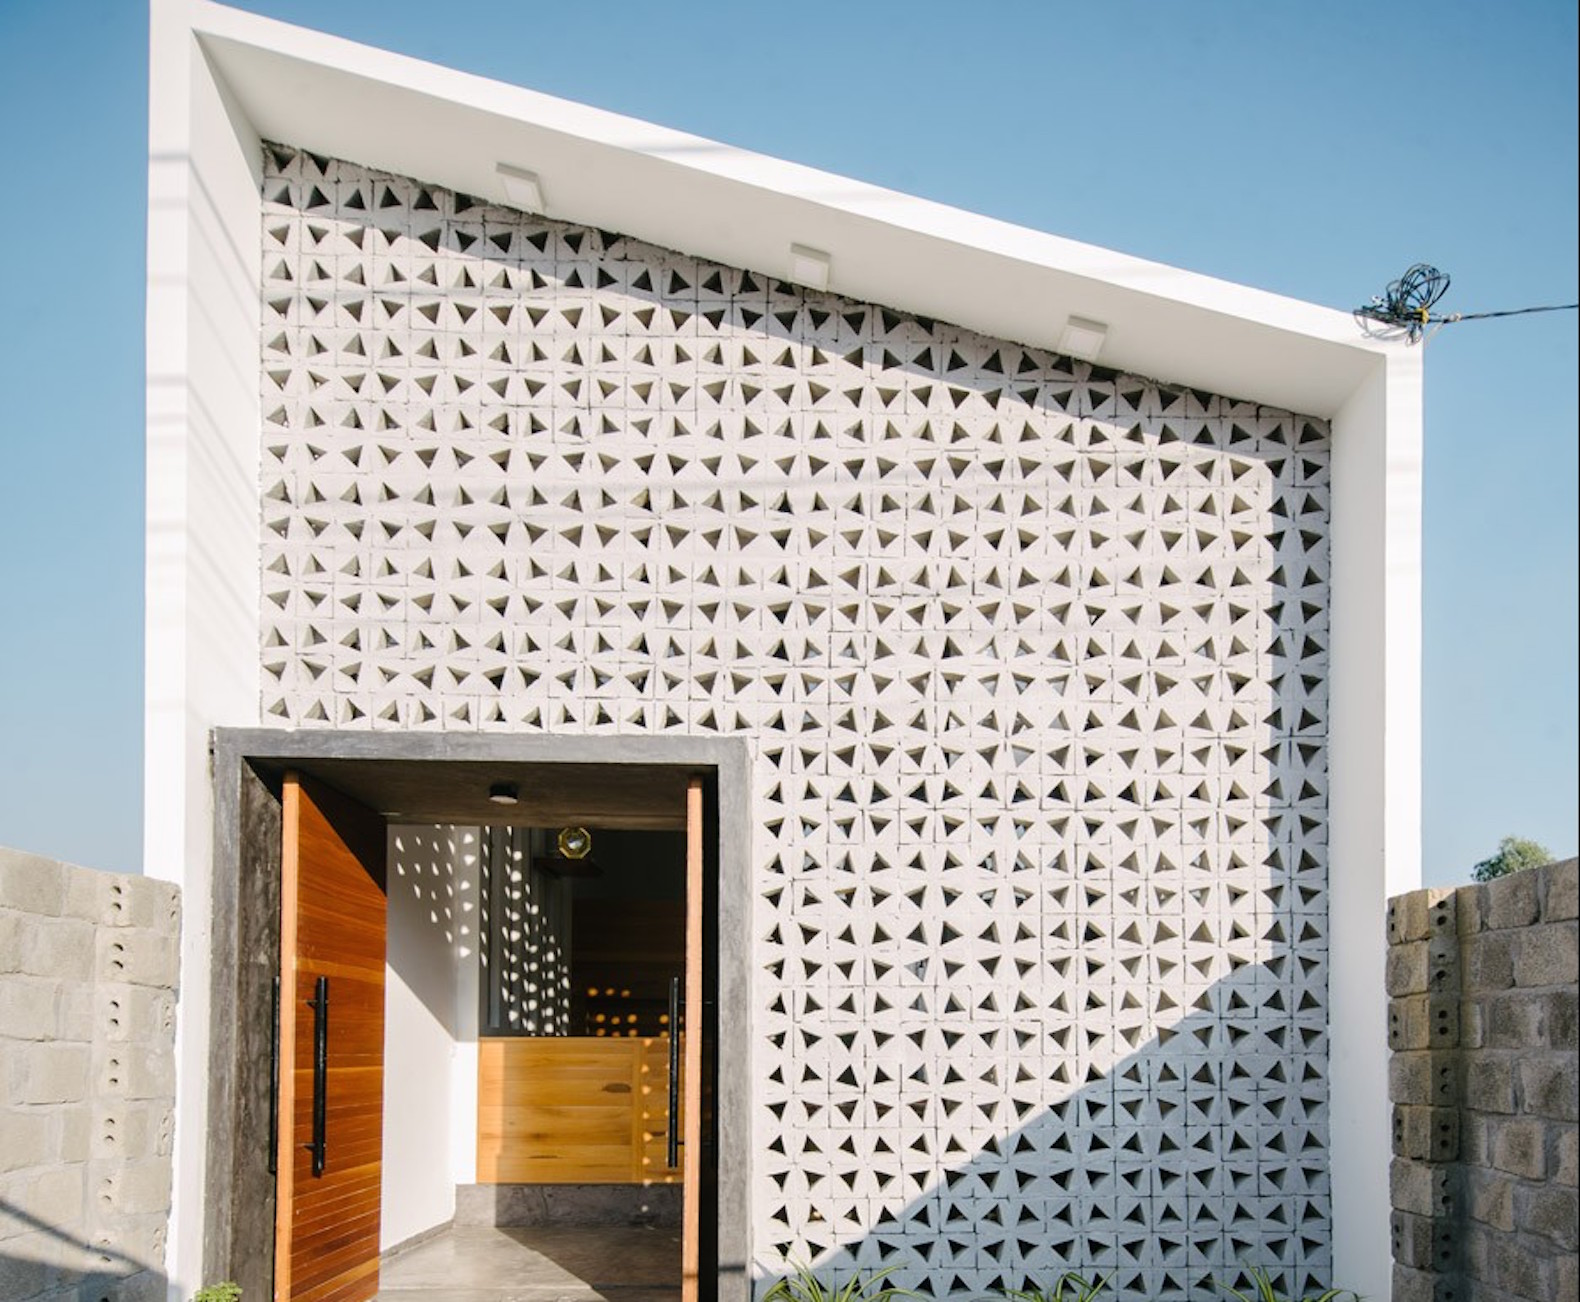 Low Cost Perforated Home In Vietnam Shows Off The Charms Of Concrete Architecture